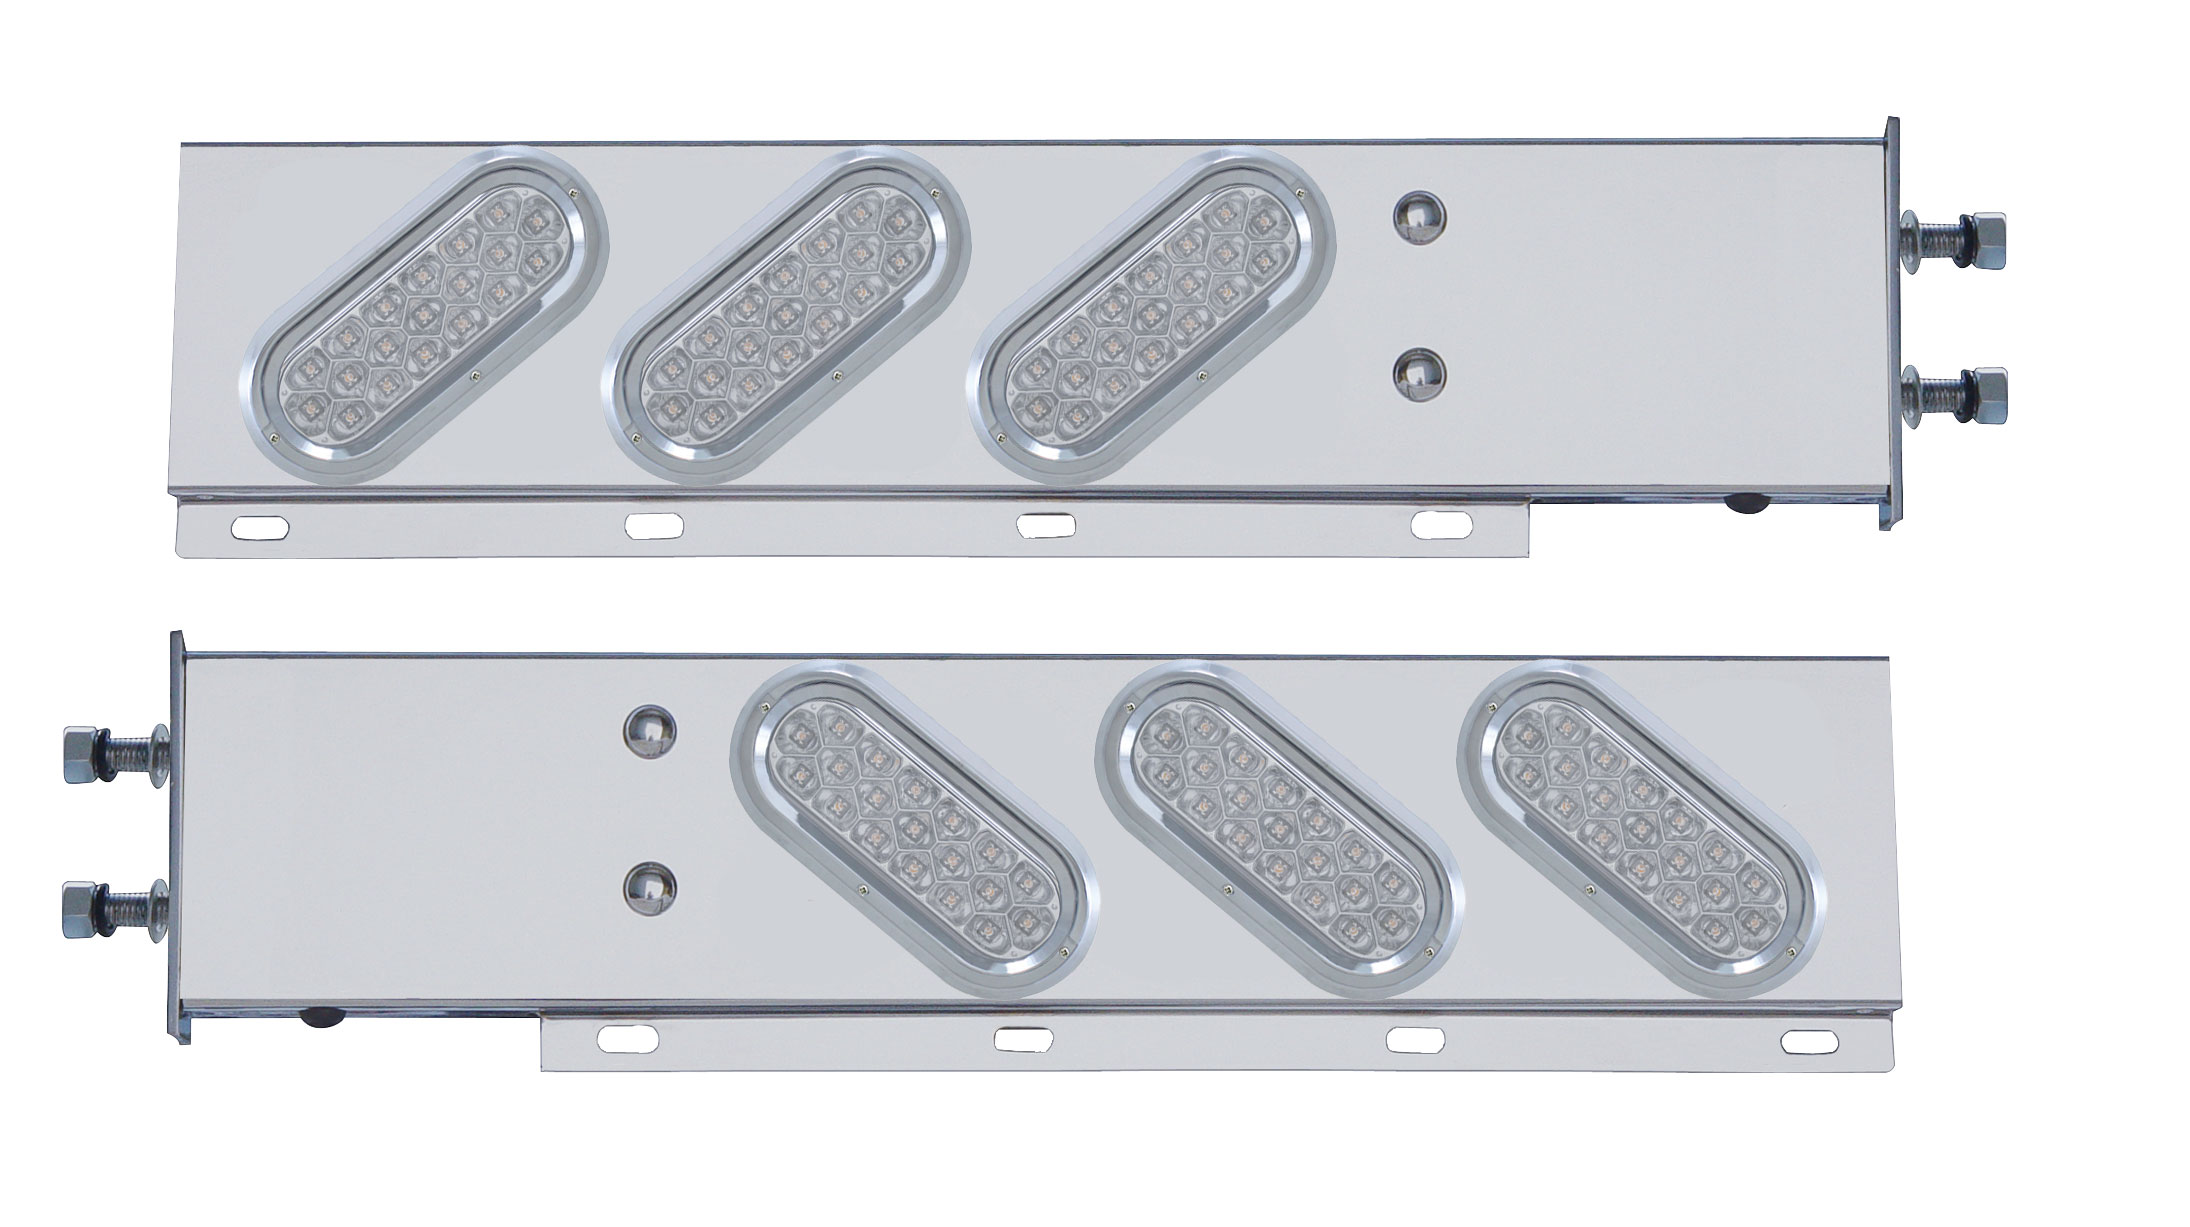 "(2/Bulk) Stainless Steel Spring Loaded Rear Lt Bar W/ 6 Slanted Down 19 Red Led Oval Clear Lens Lt W/ Visor - 3 3/4"" B.P."